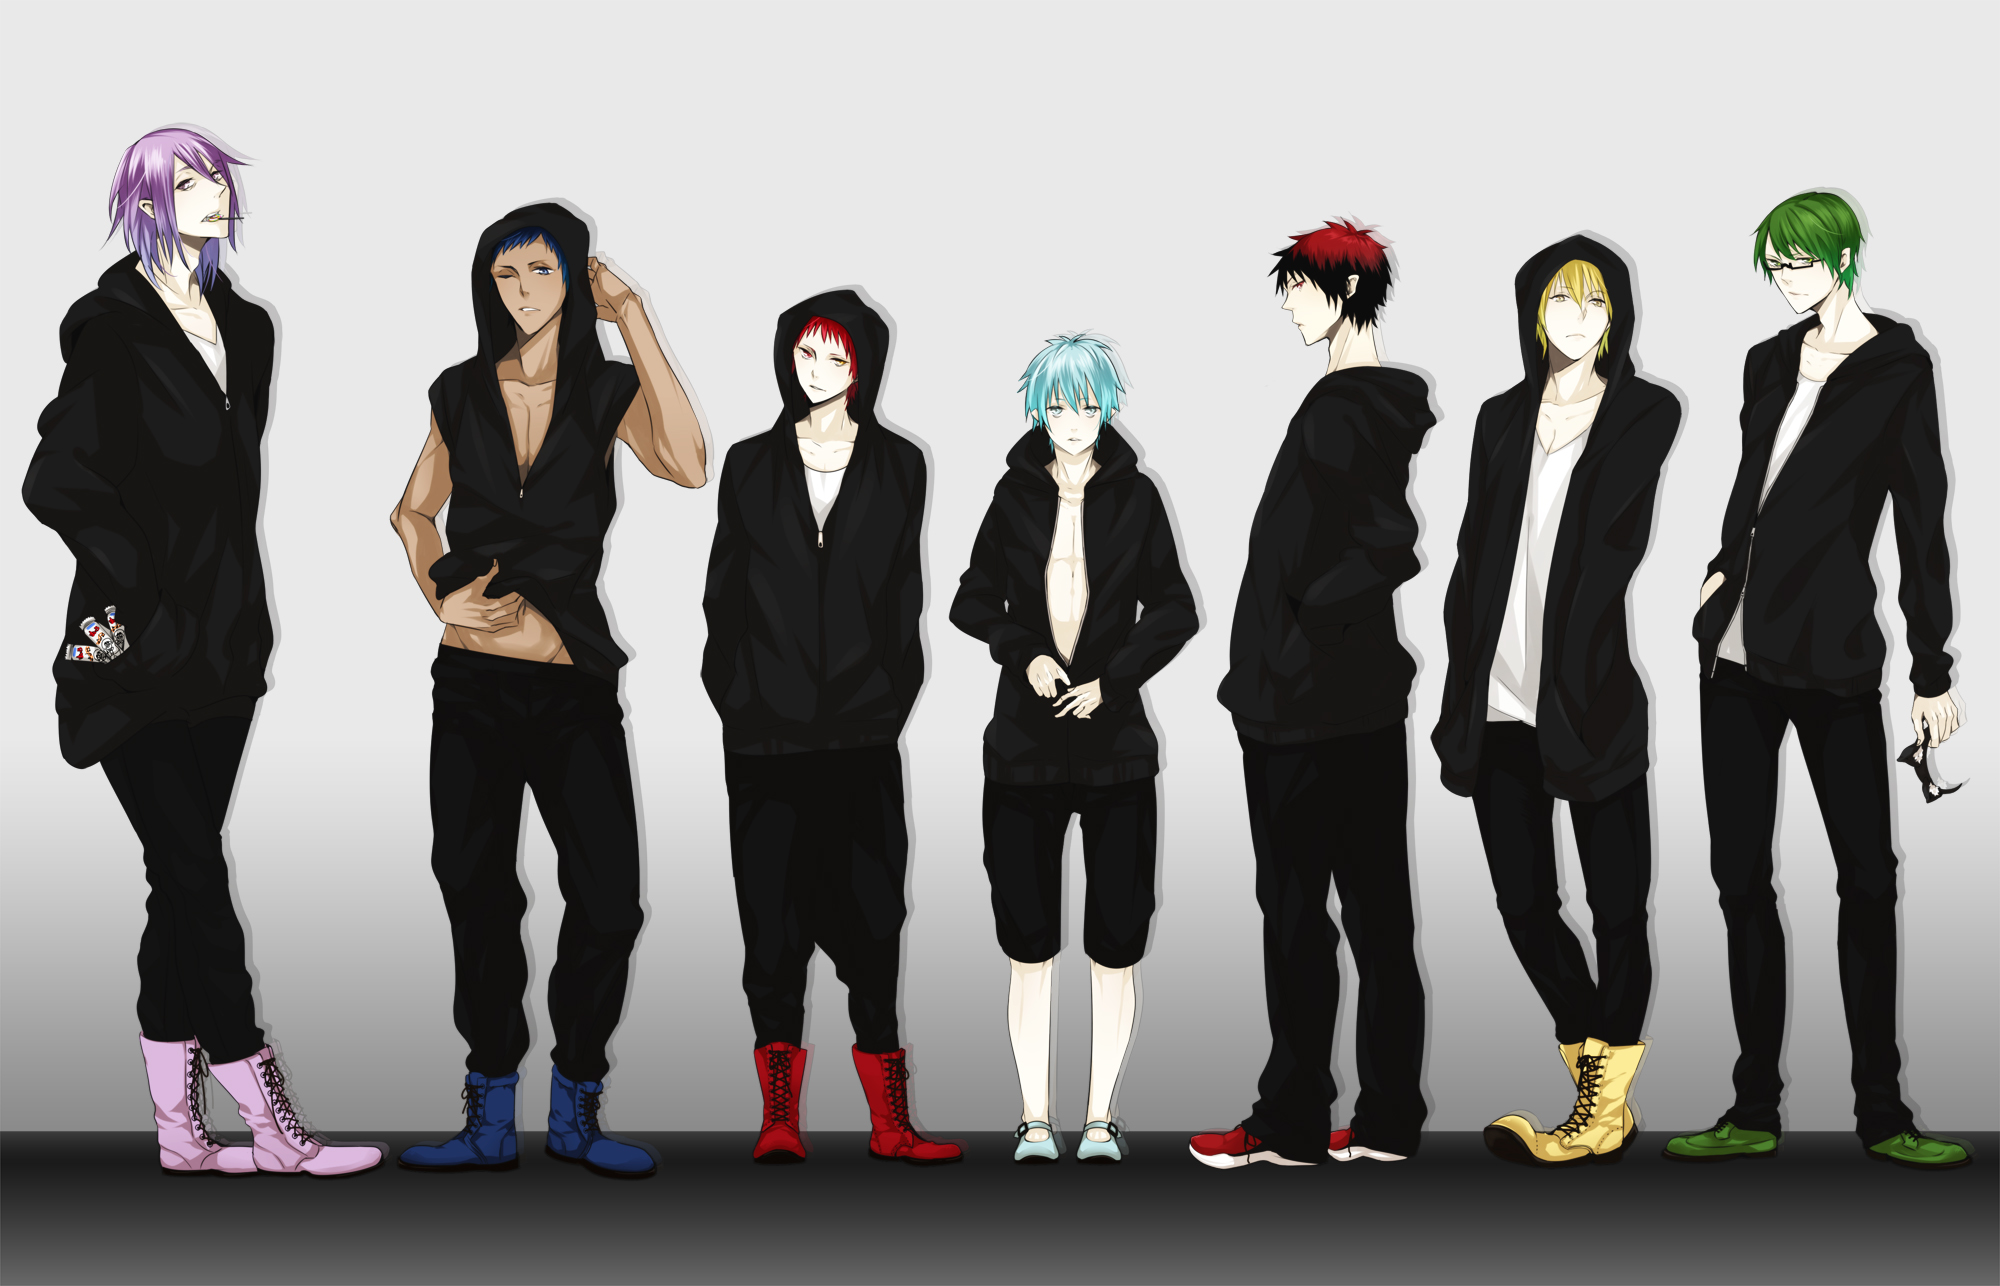 Kuroko no basuke wallpapers high quality download free kuroko no basuke wallpapers voltagebd Gallery